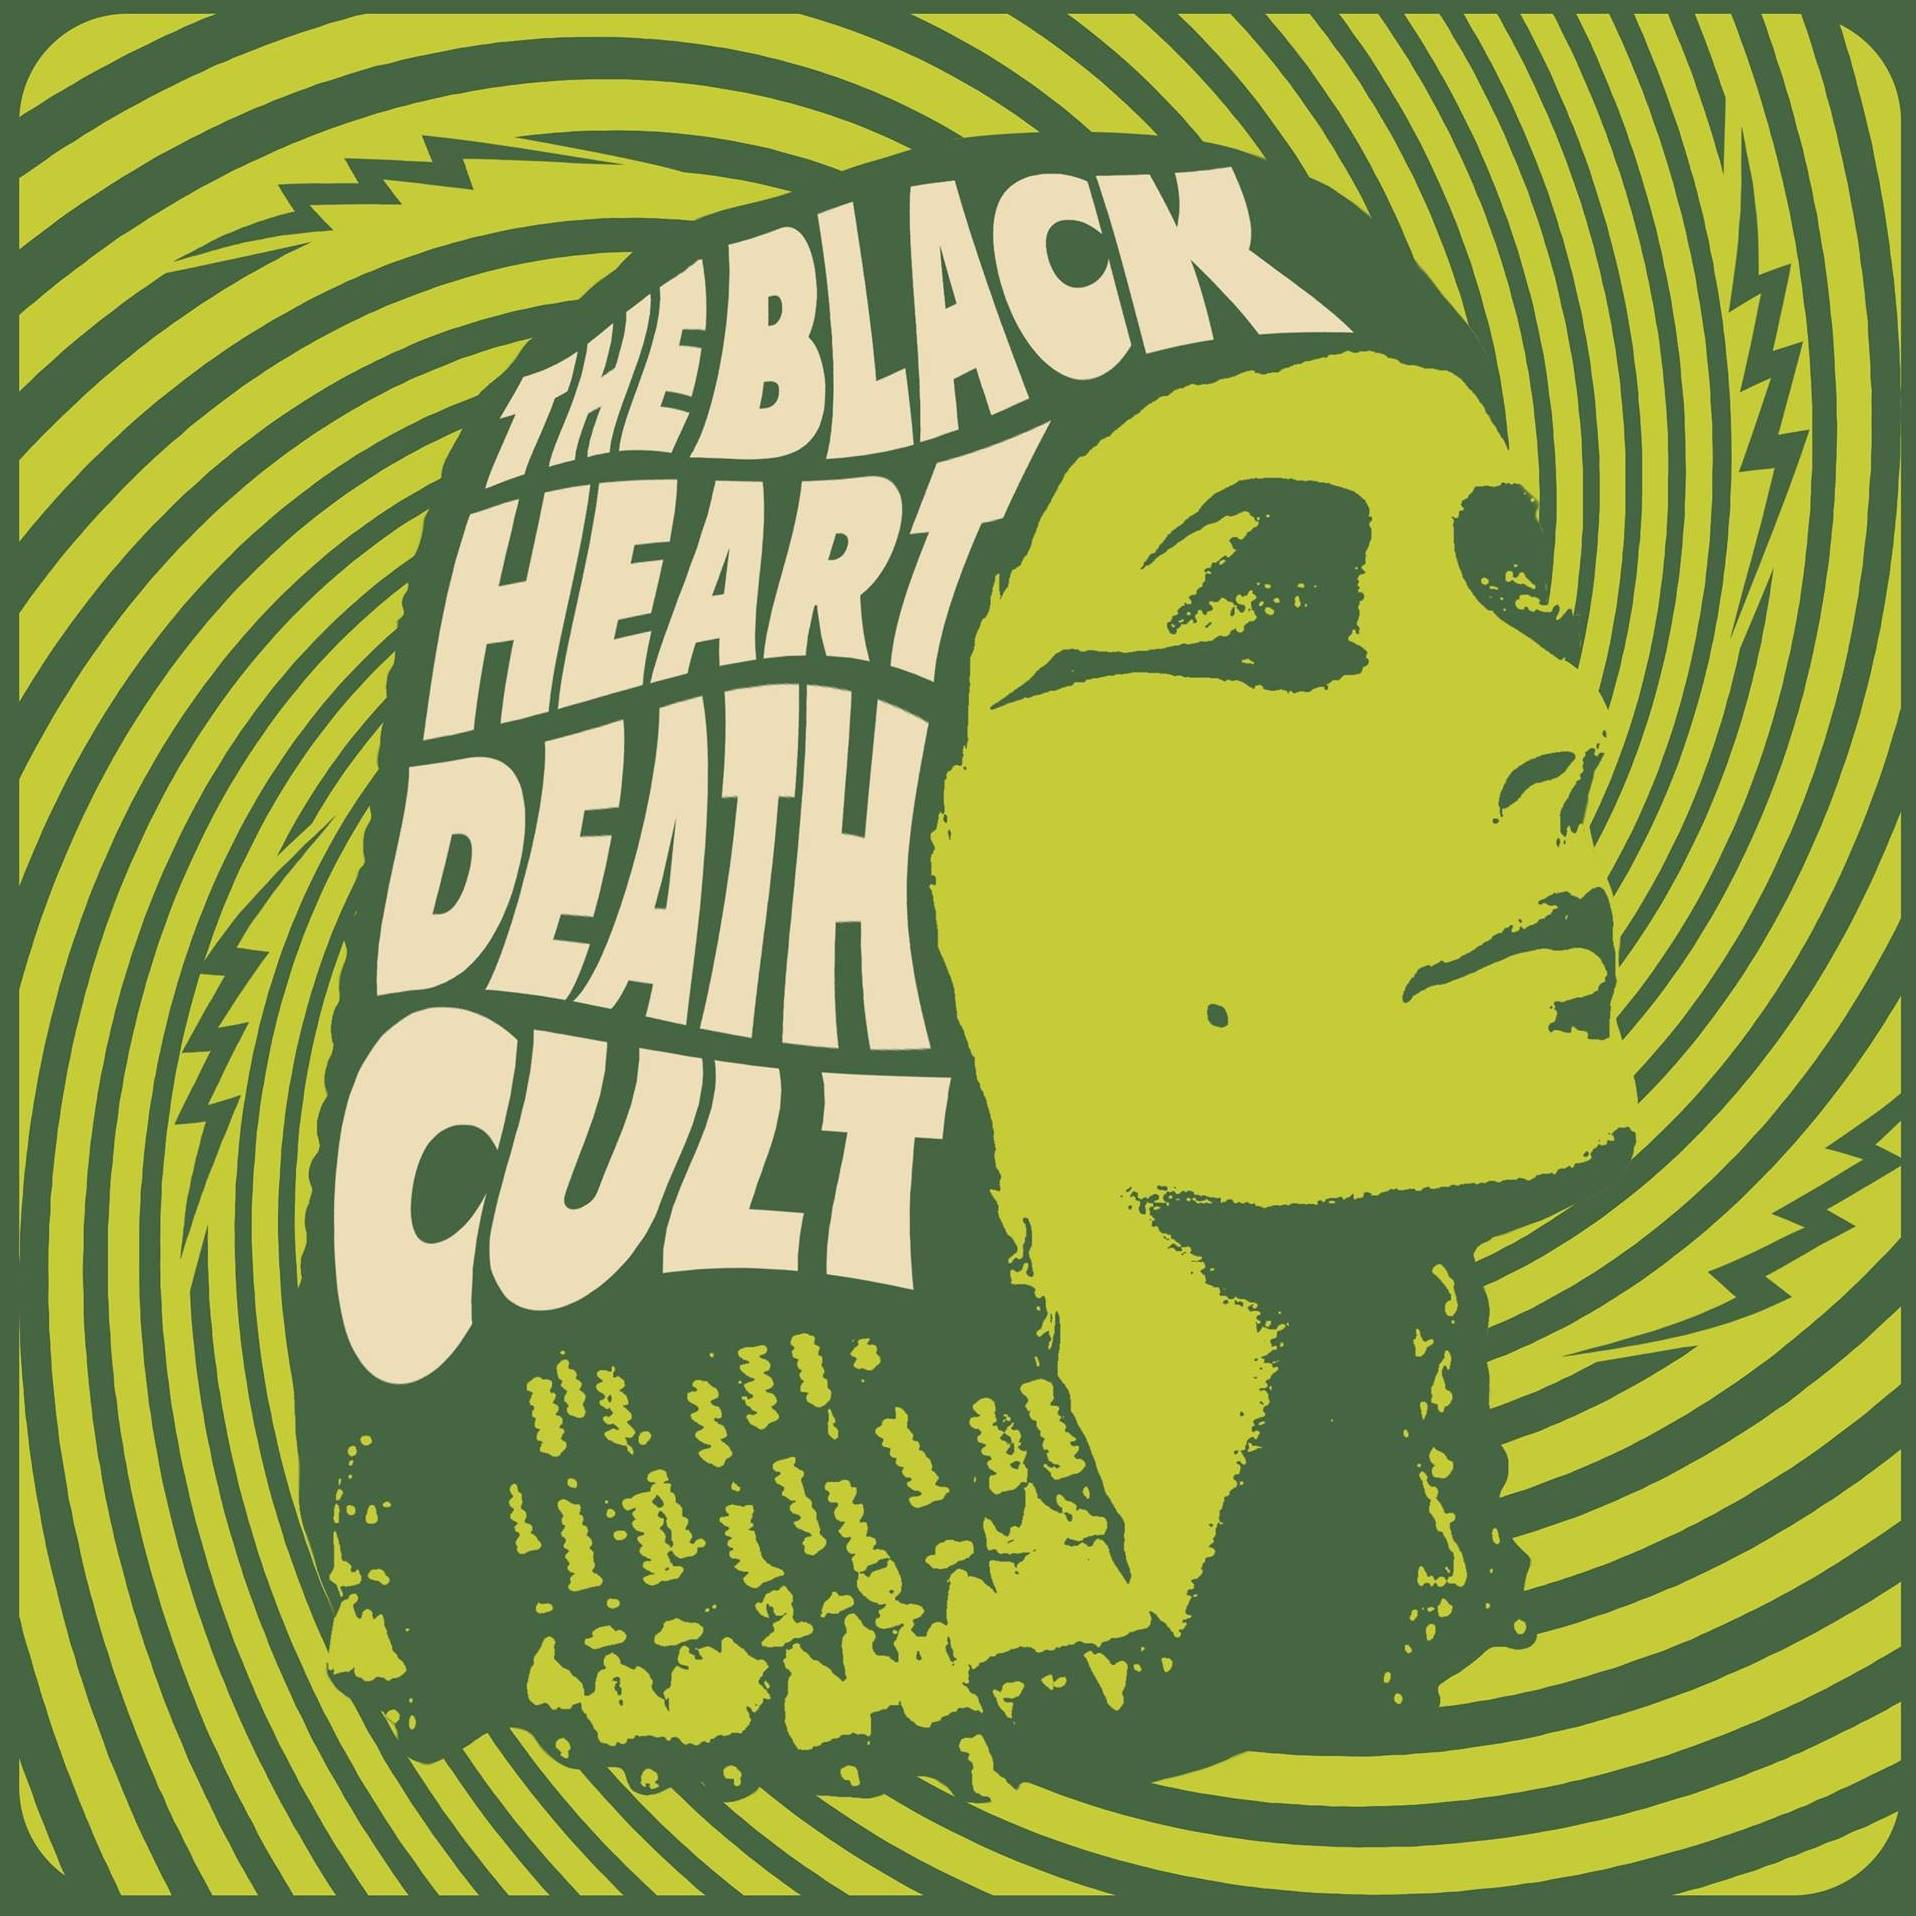 the black heart death cult the black heart death cult